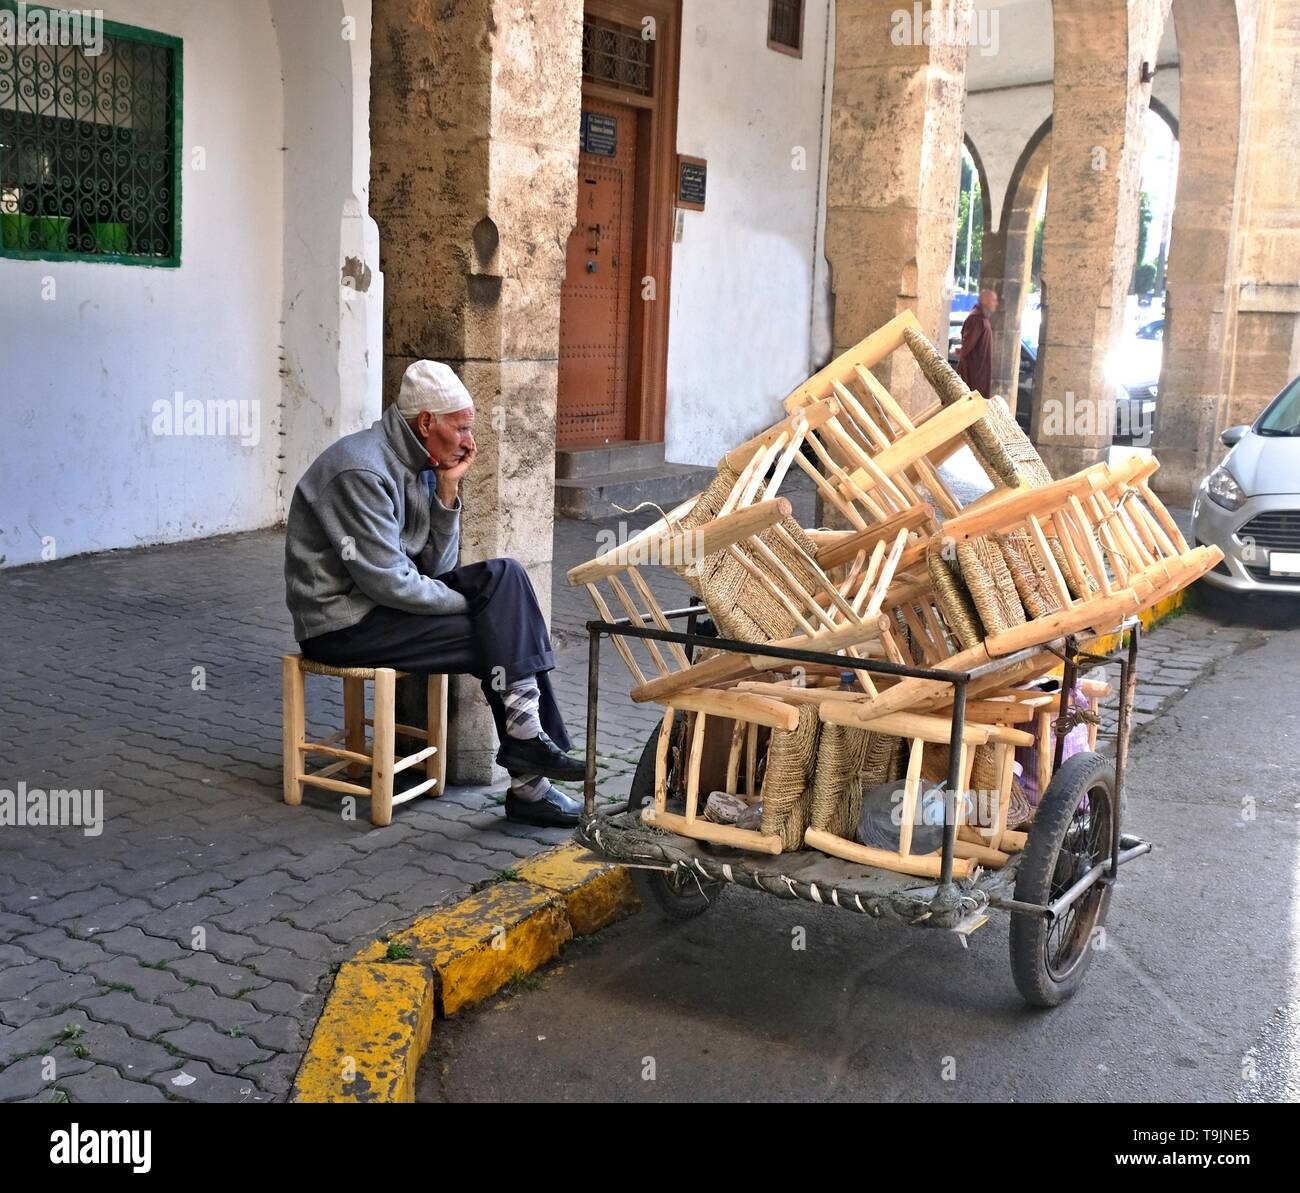 March 10, 2019, Casablanca, Morocco: Craftsman, carpenter, manufacturing chairs and selling their goods on the streets of Casablanca in Morocco - Stock Image